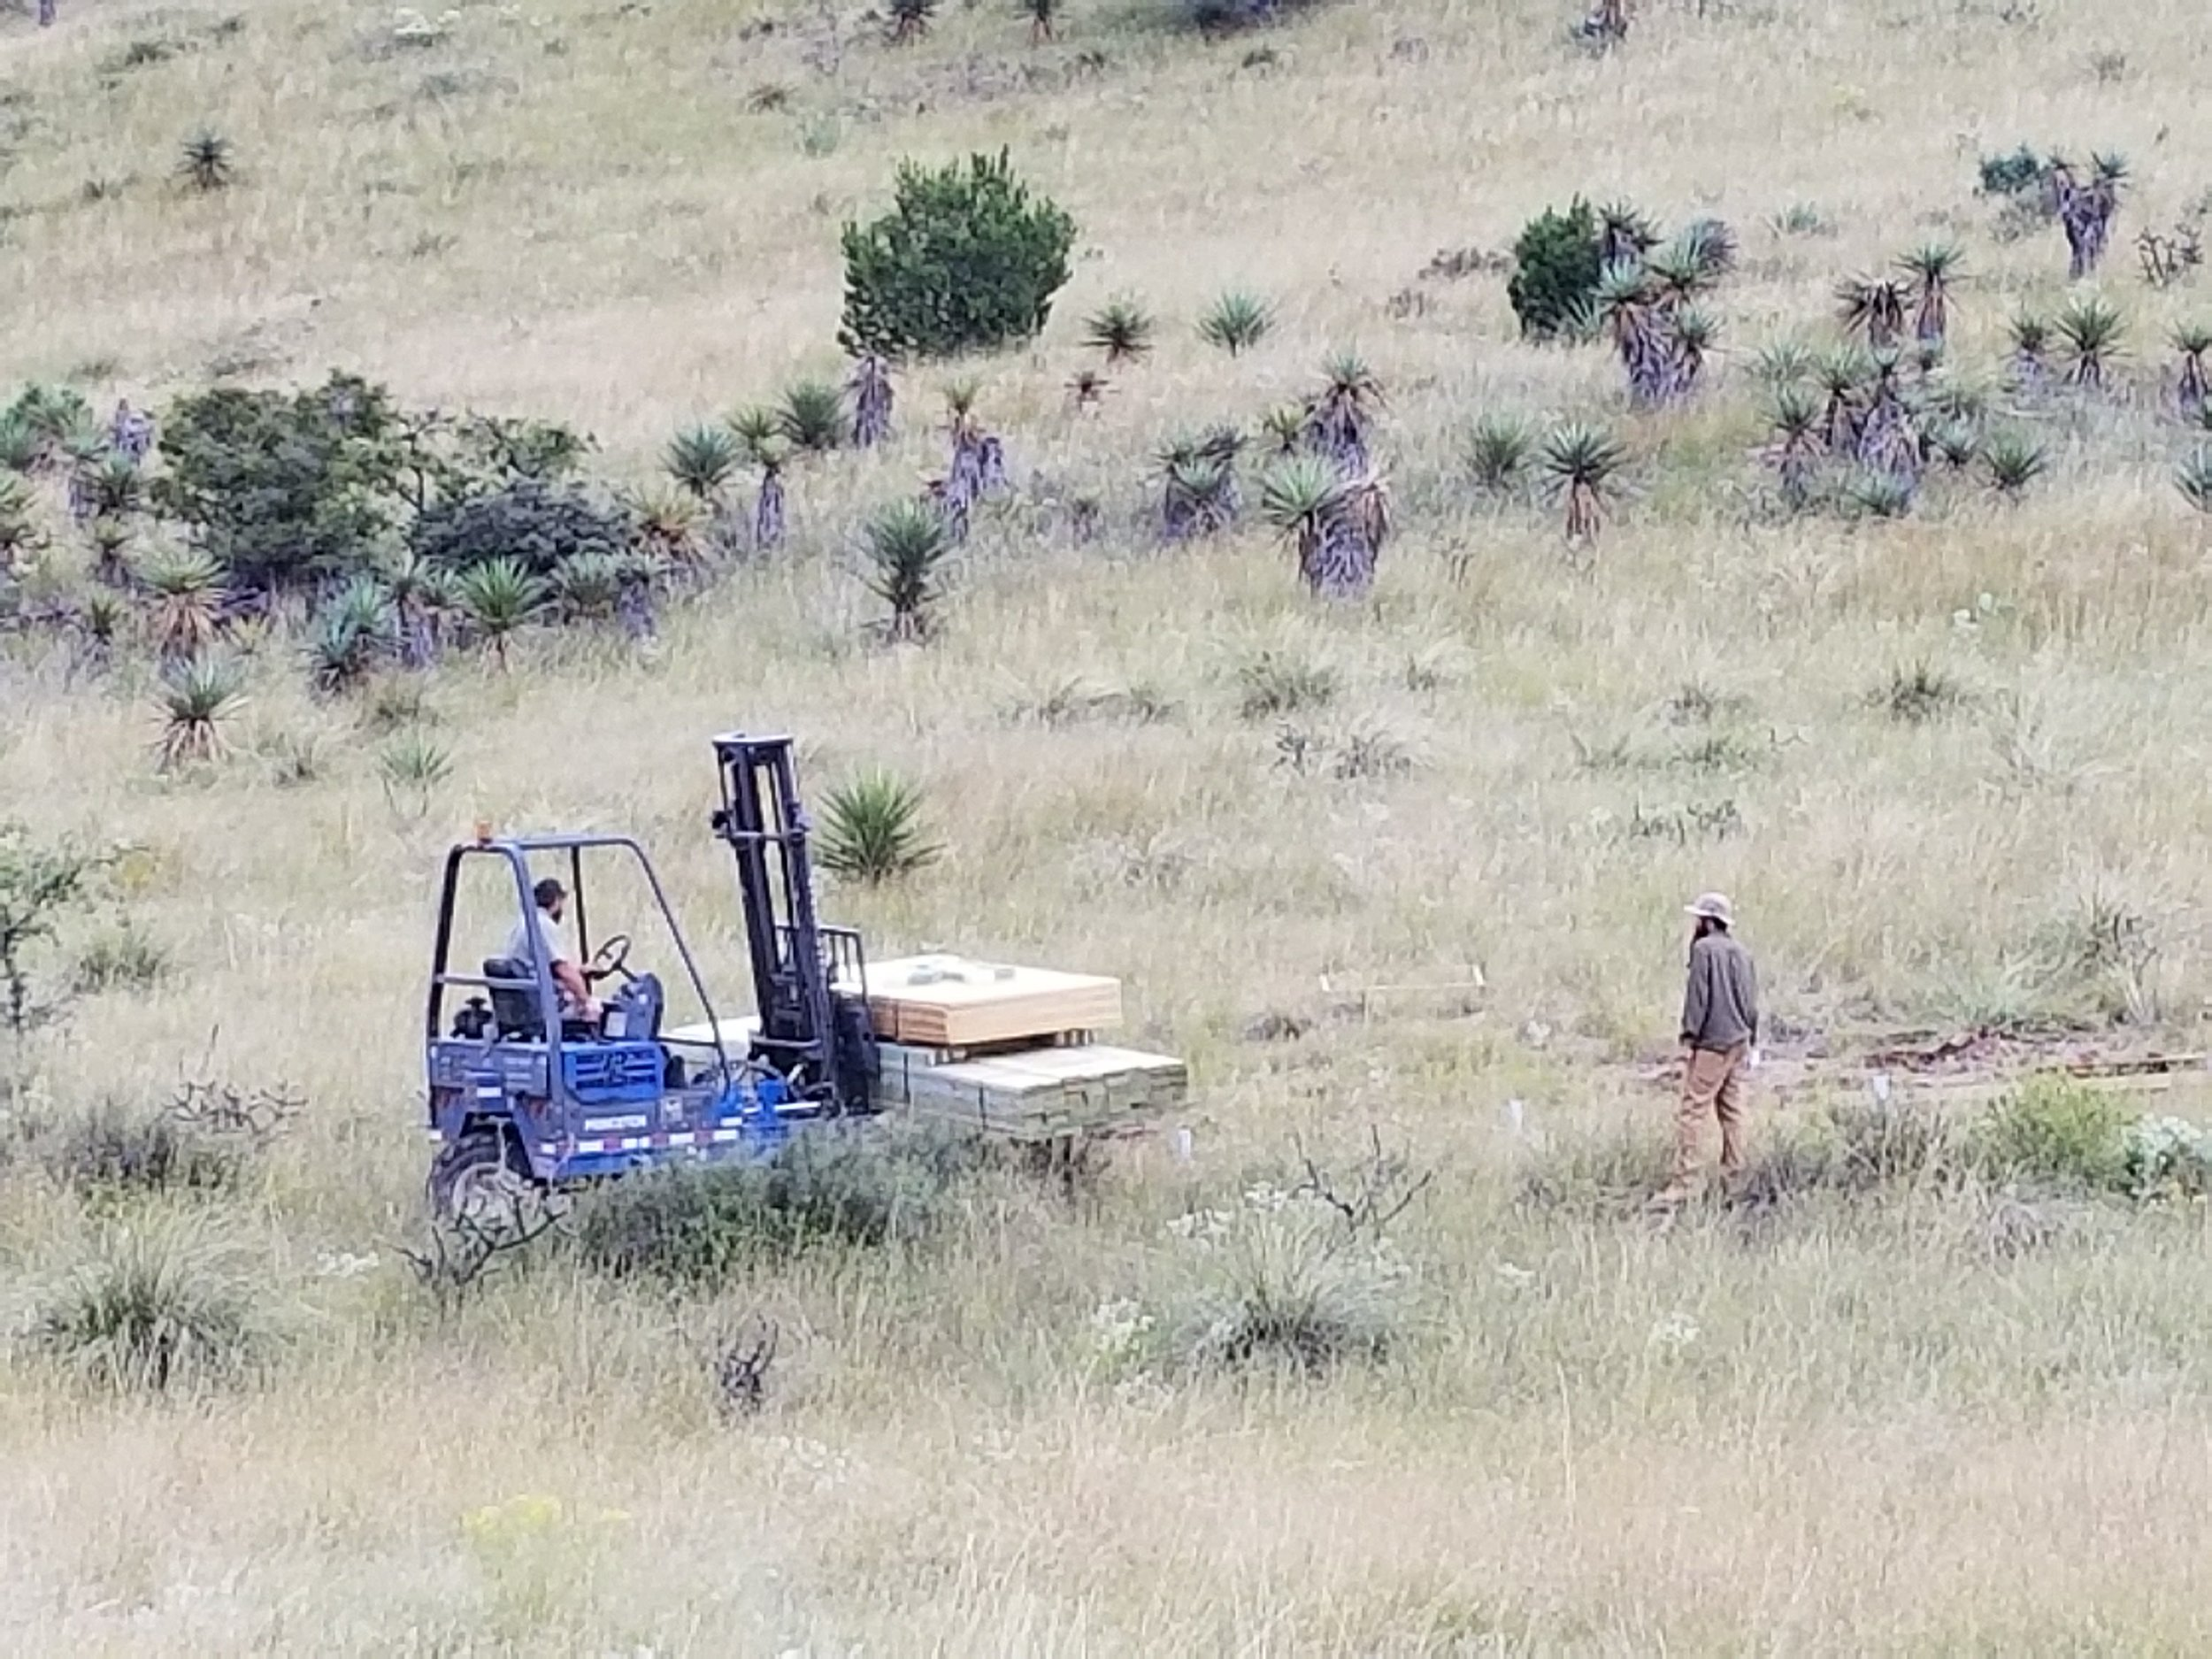 Off-road forklift taking the wood up to the tent spot.